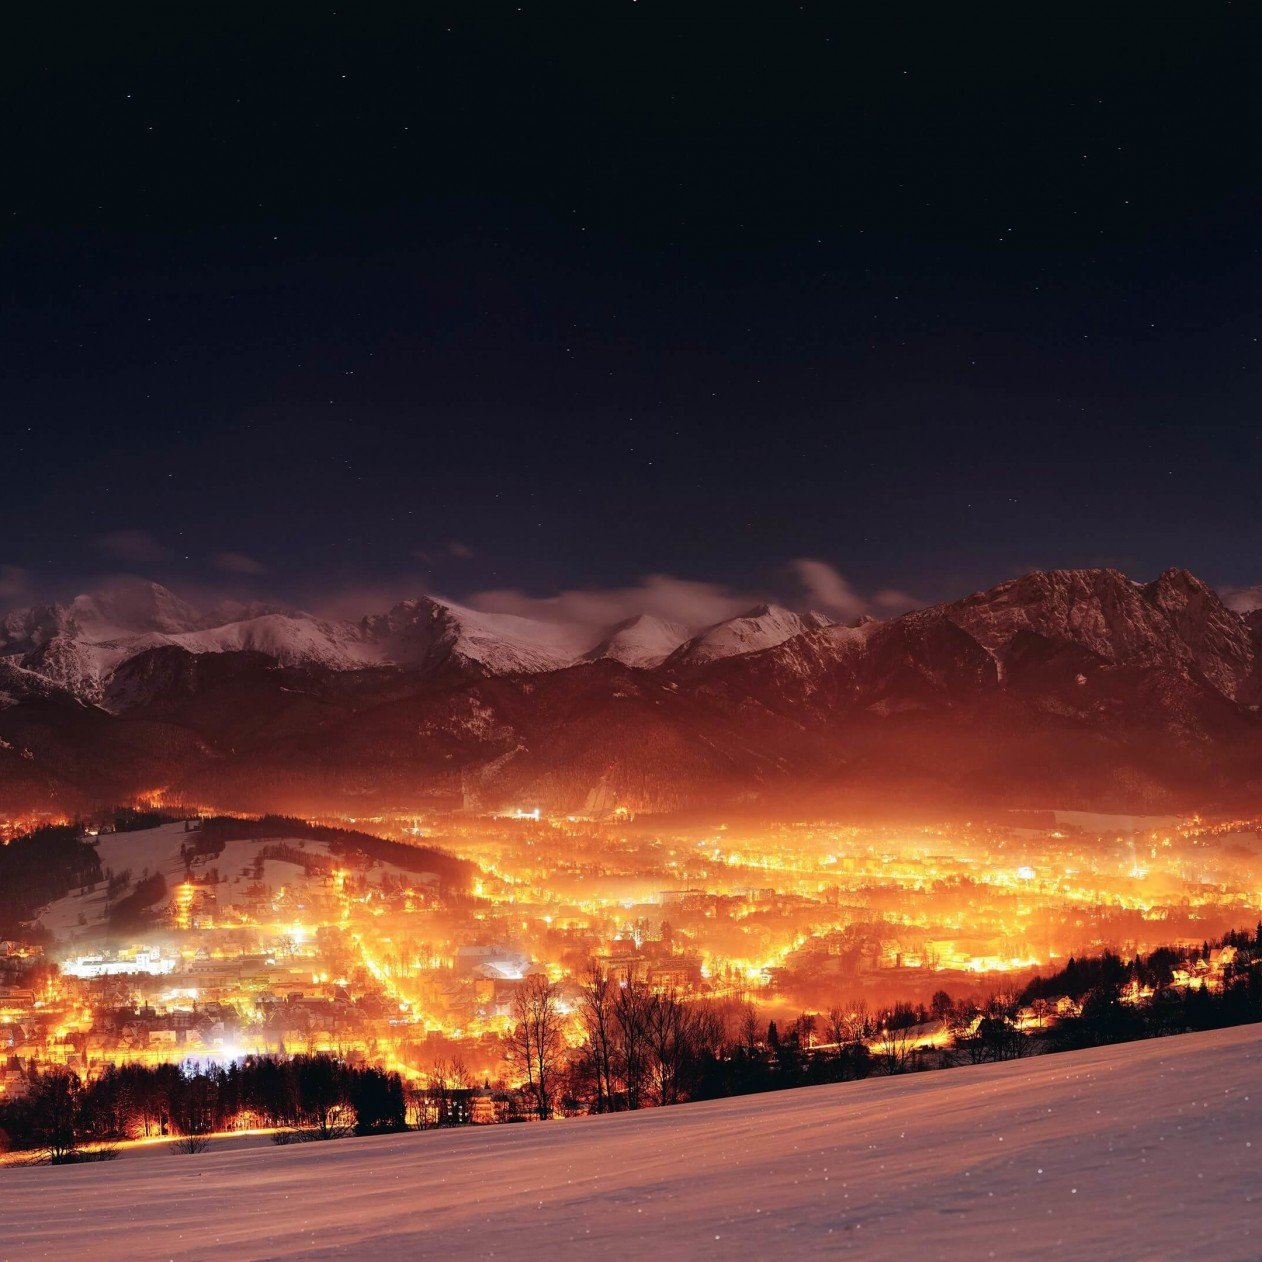 Zakopane City At Night - Poland Wallpaper for Apple iPad mini